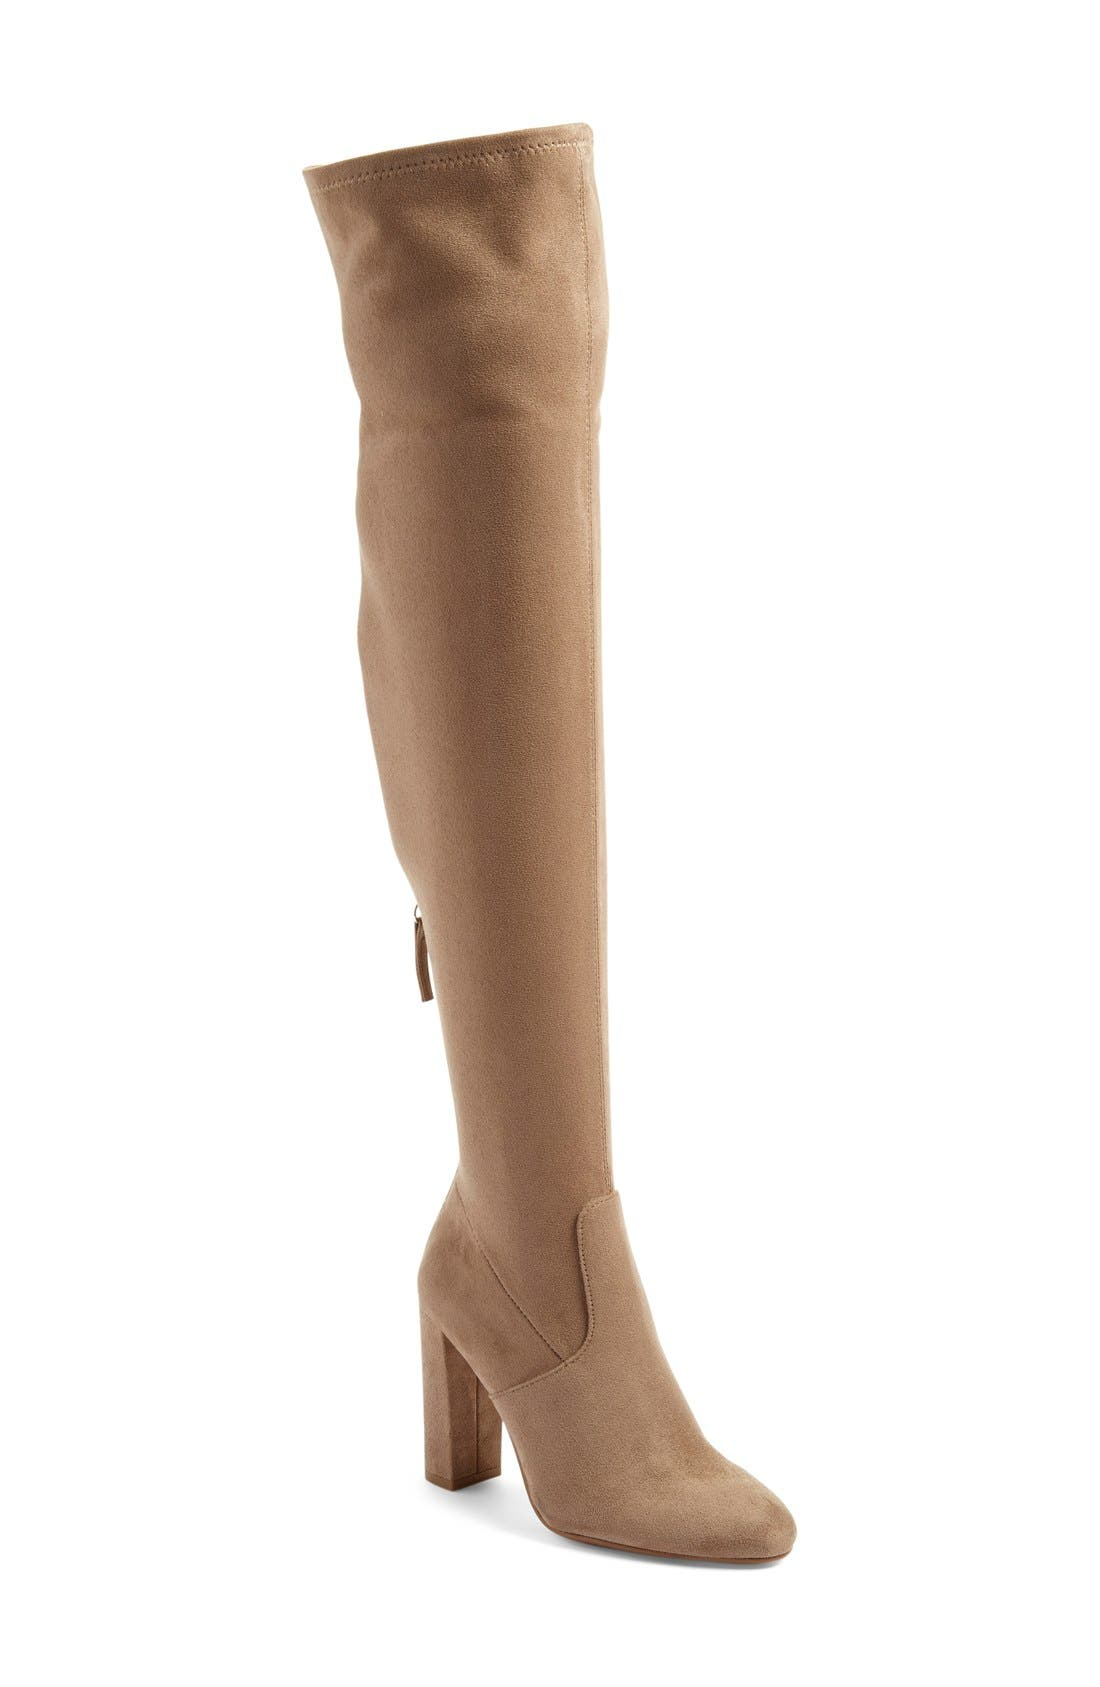 Alternate Image 1 Selected - Steve Madden 'Emotions' Stretch Over the Knee Boot (Women)